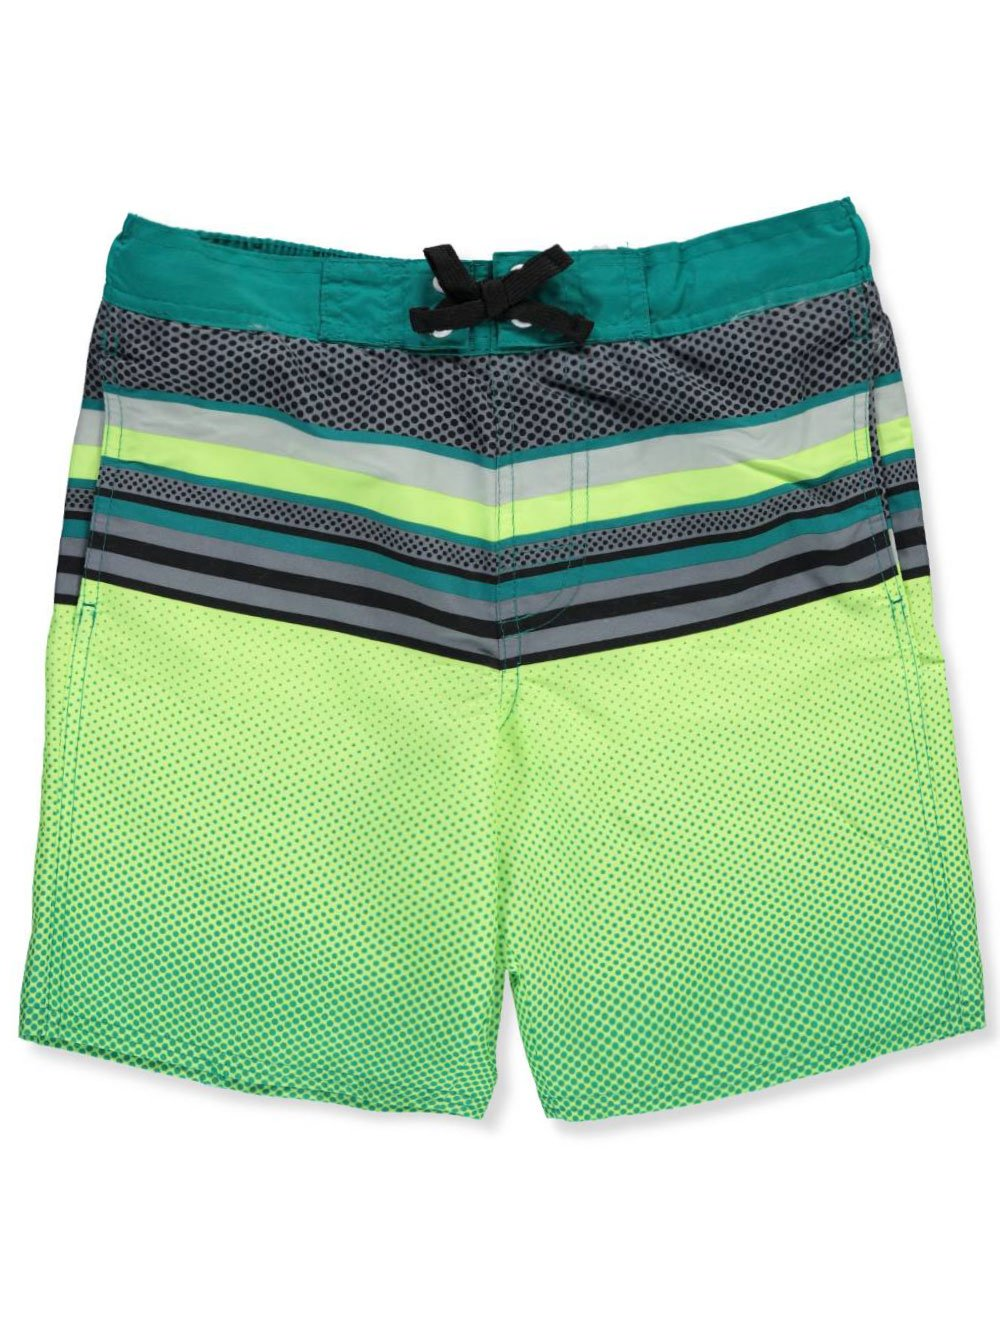 Body Glove Boys' Swim Trunks 14-16